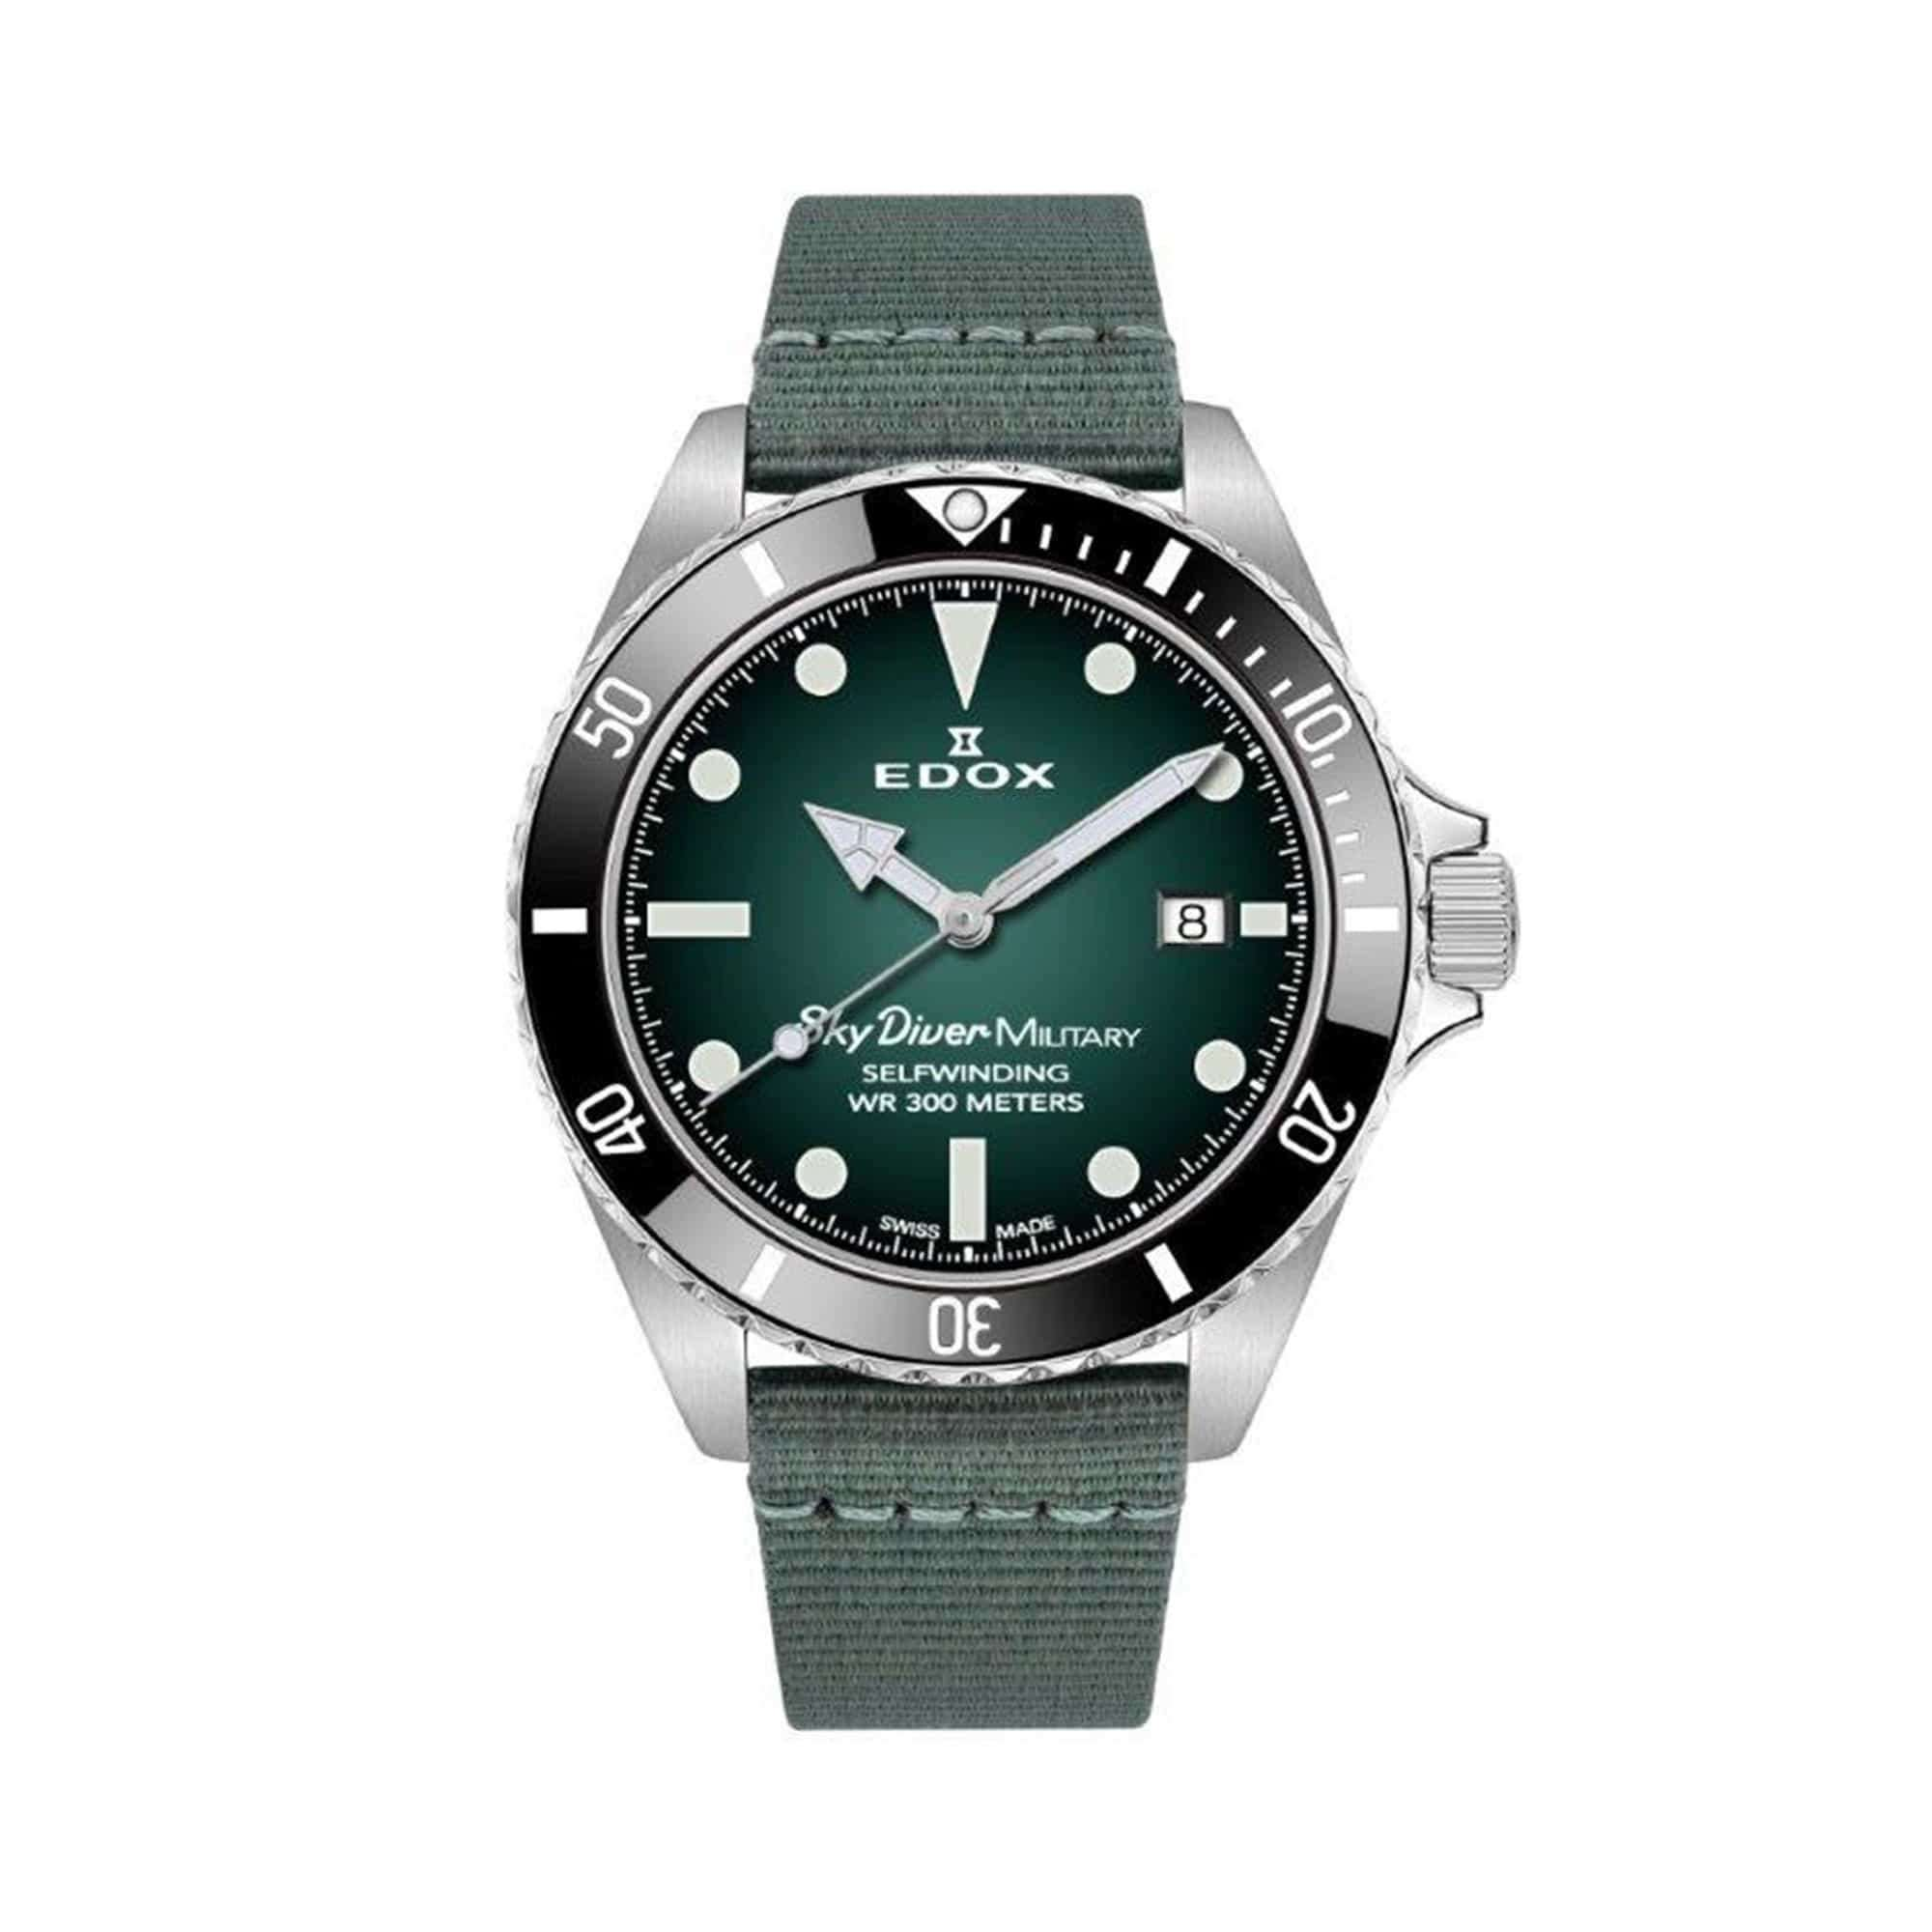 Edox Skydiver Military Stainless Steel Limited Edition 80115-RN-VD – Swiss Time